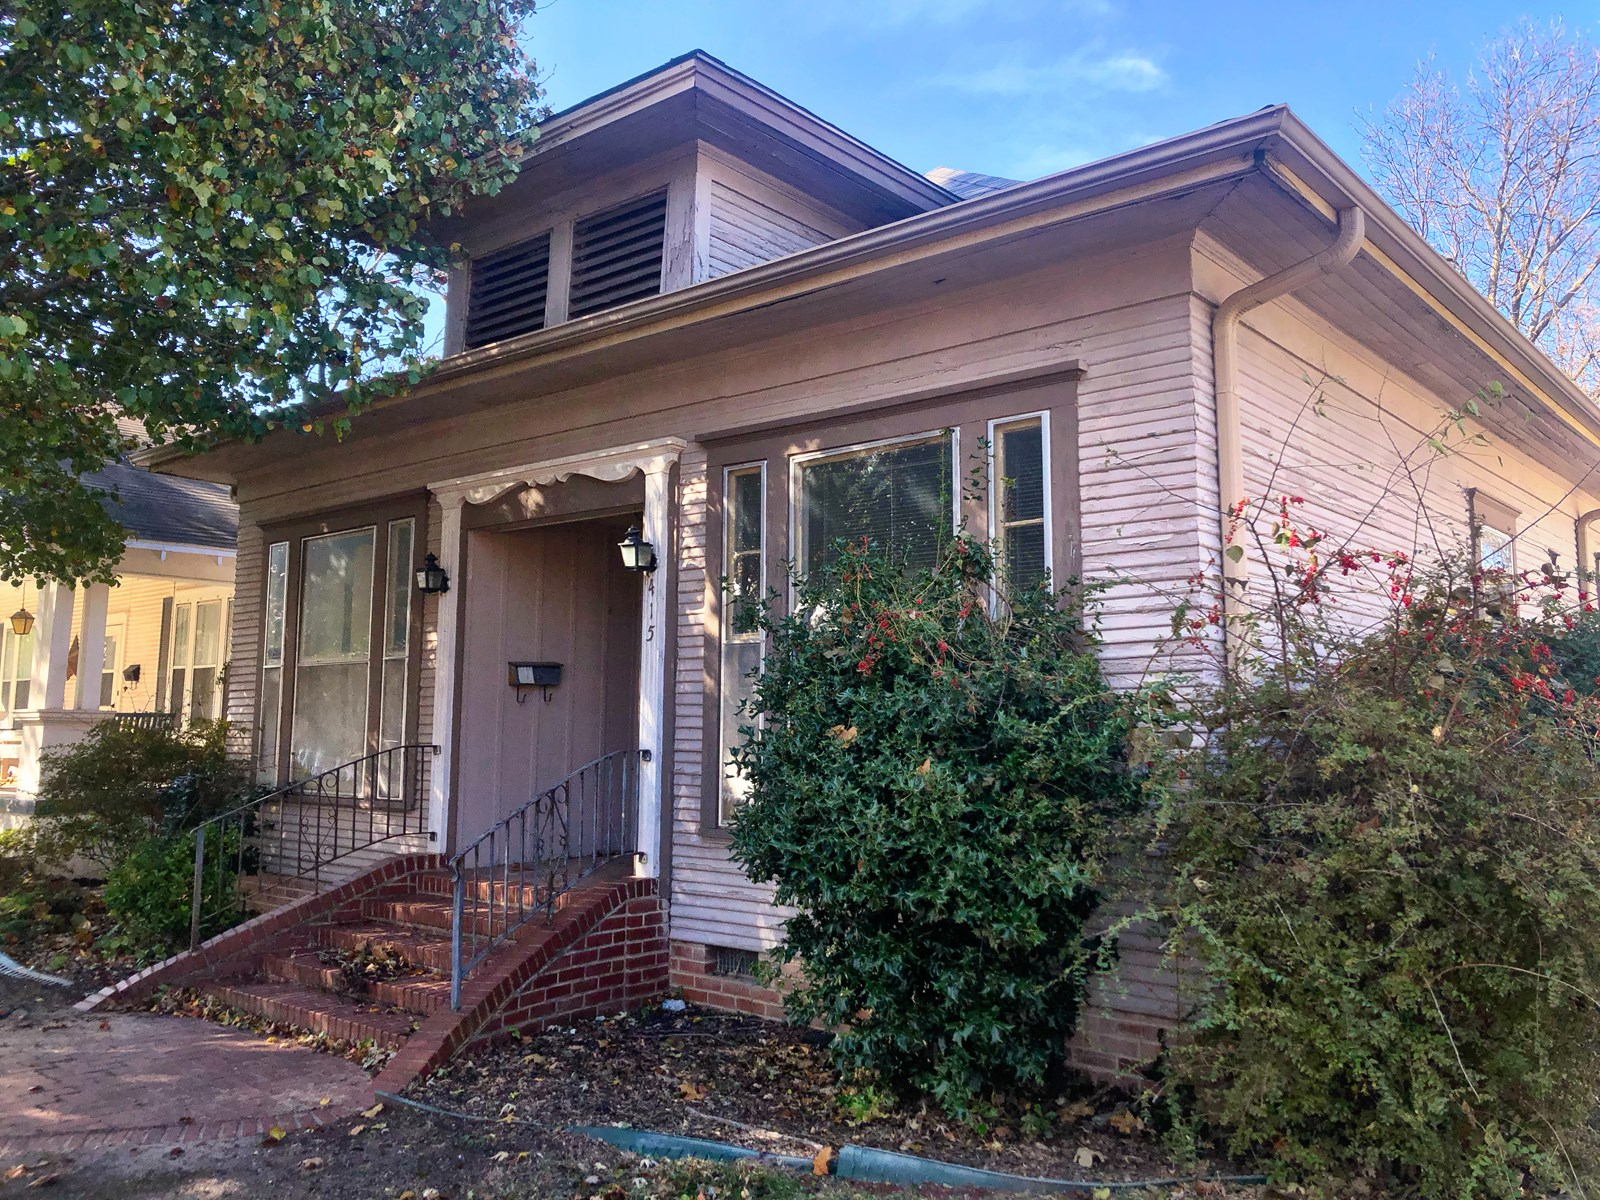 HISTORIC HOME WITH GARAGE APARTMENT IN NW ARDMORE